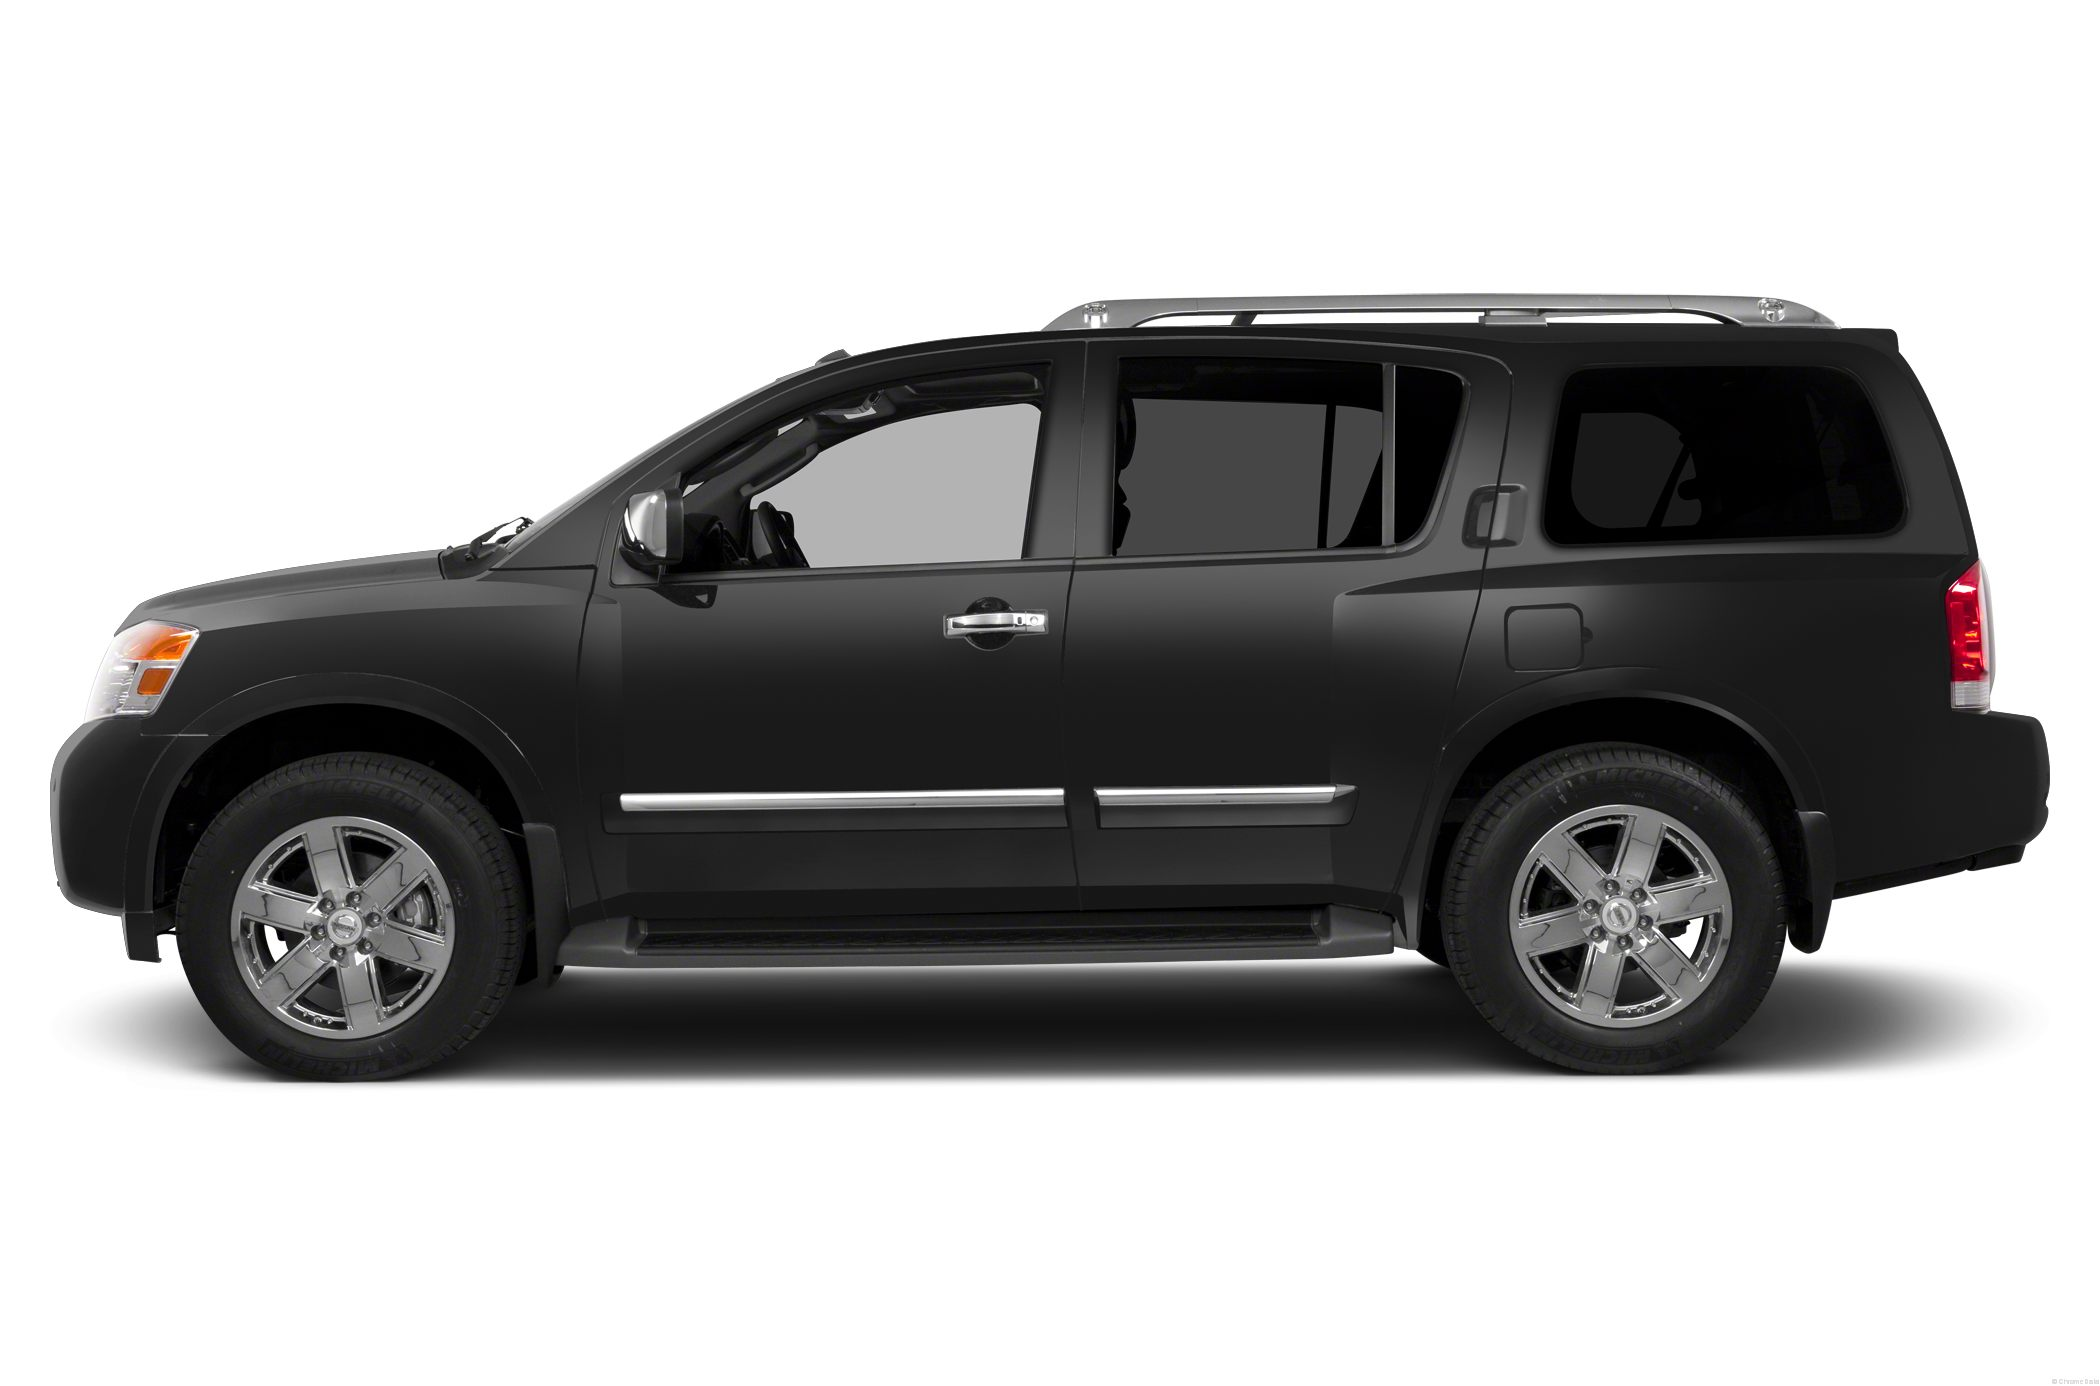 nissan armada pictures #13